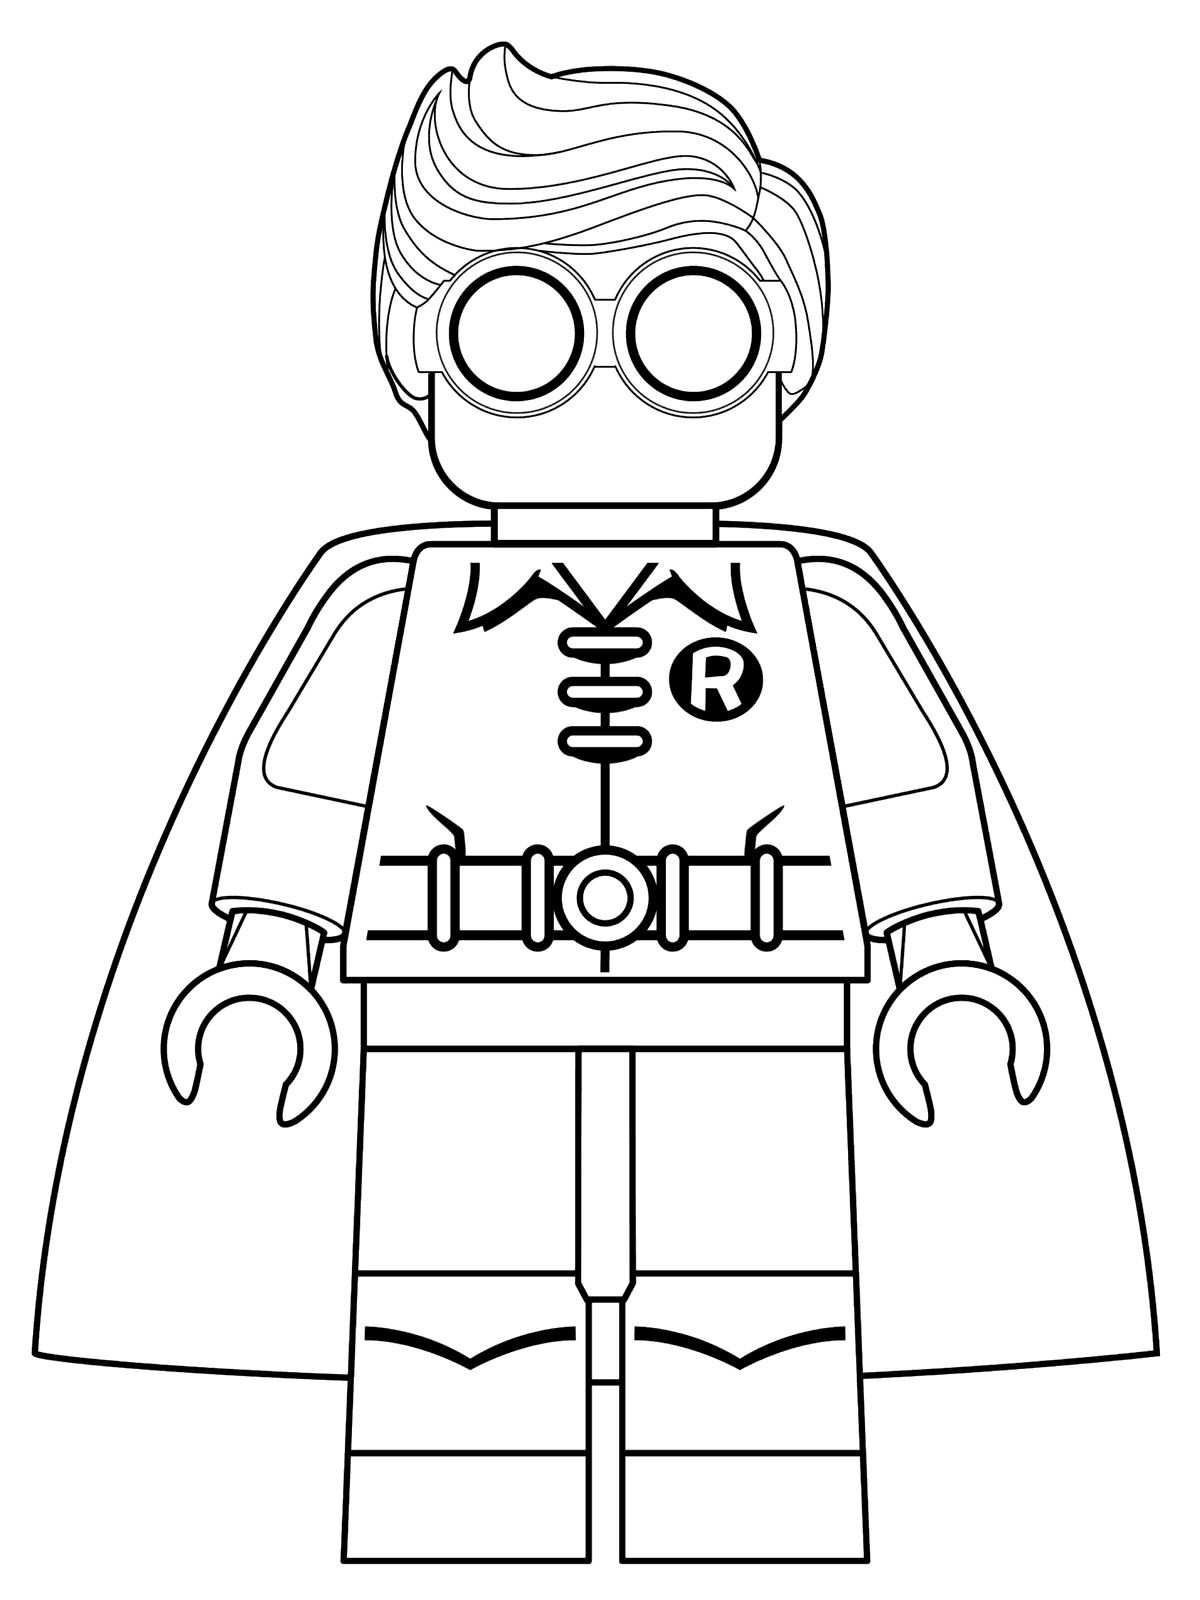 Ausmalbilder Lego Batman Neu Lego Batman Coloring Coloring Pages Pinterest Frisch Batman Joker Das Bild